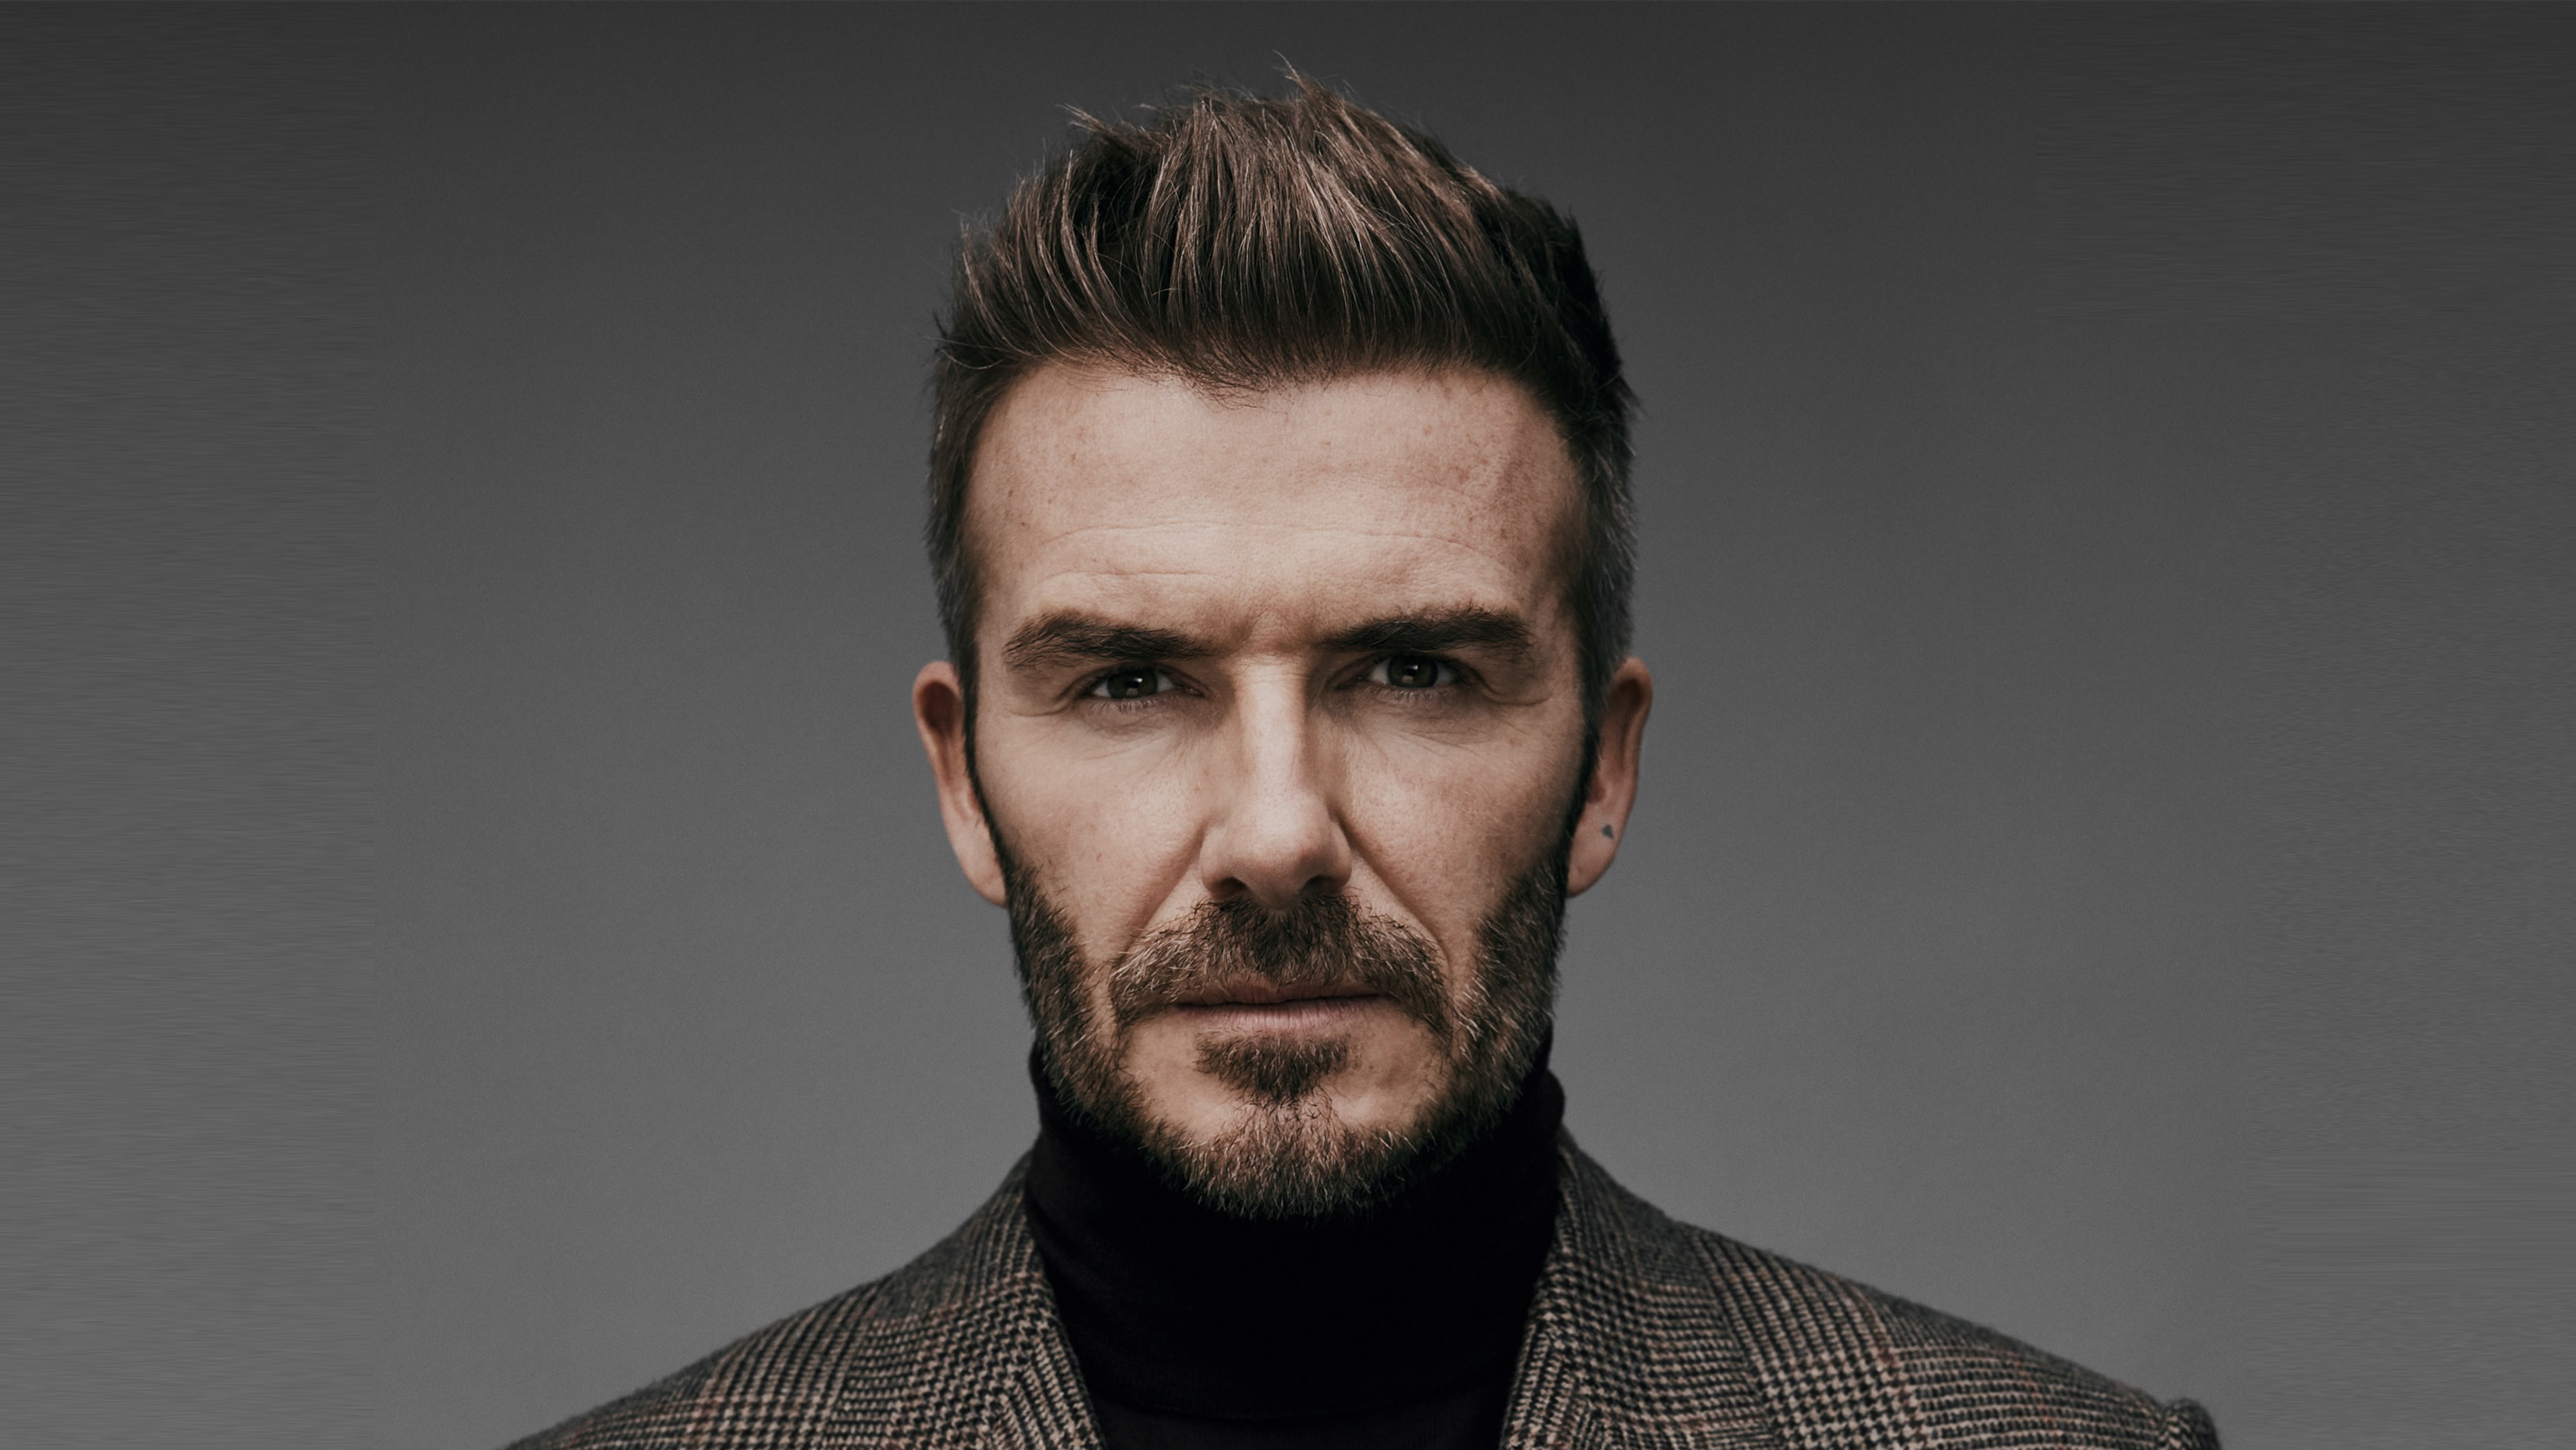 Global sporting icon David Beckham to front transformational factual entertainment series, Save Our Squad on Disney+